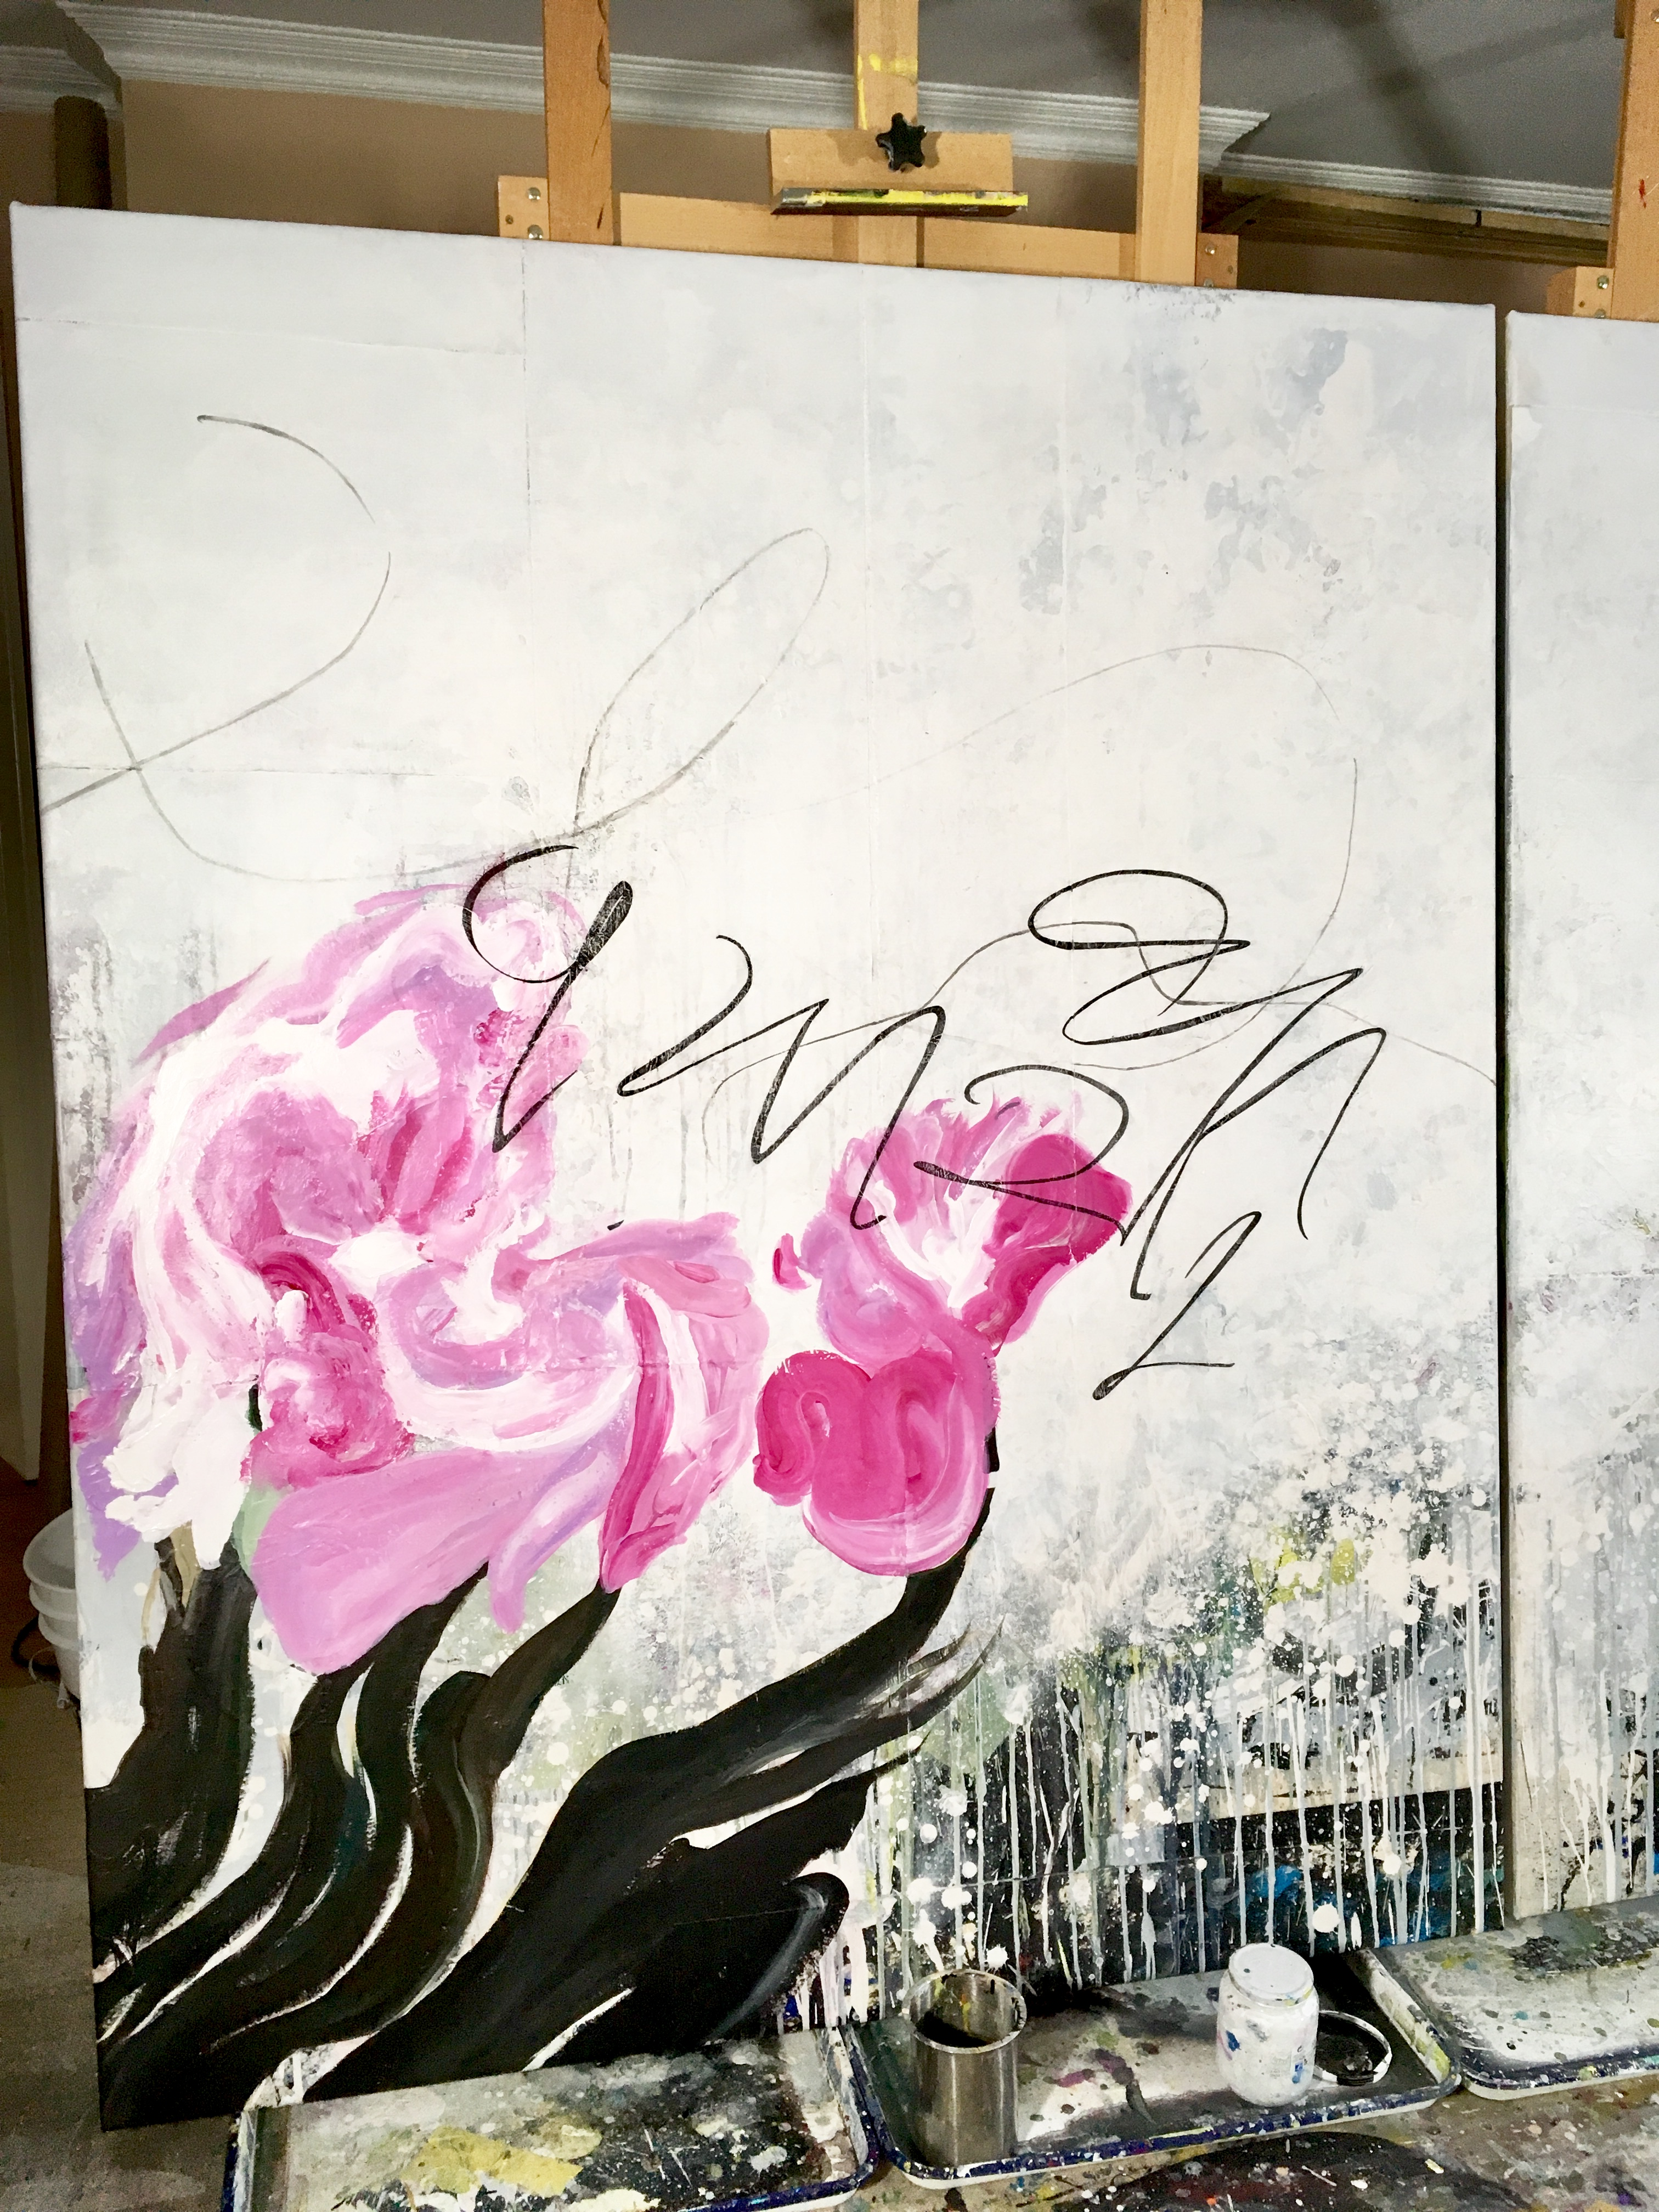 Extra Large Contemporary Abstract Art Painting Graffiti Street Urban Modern Black Industrial Loft Oversized Laura Letchinger wip